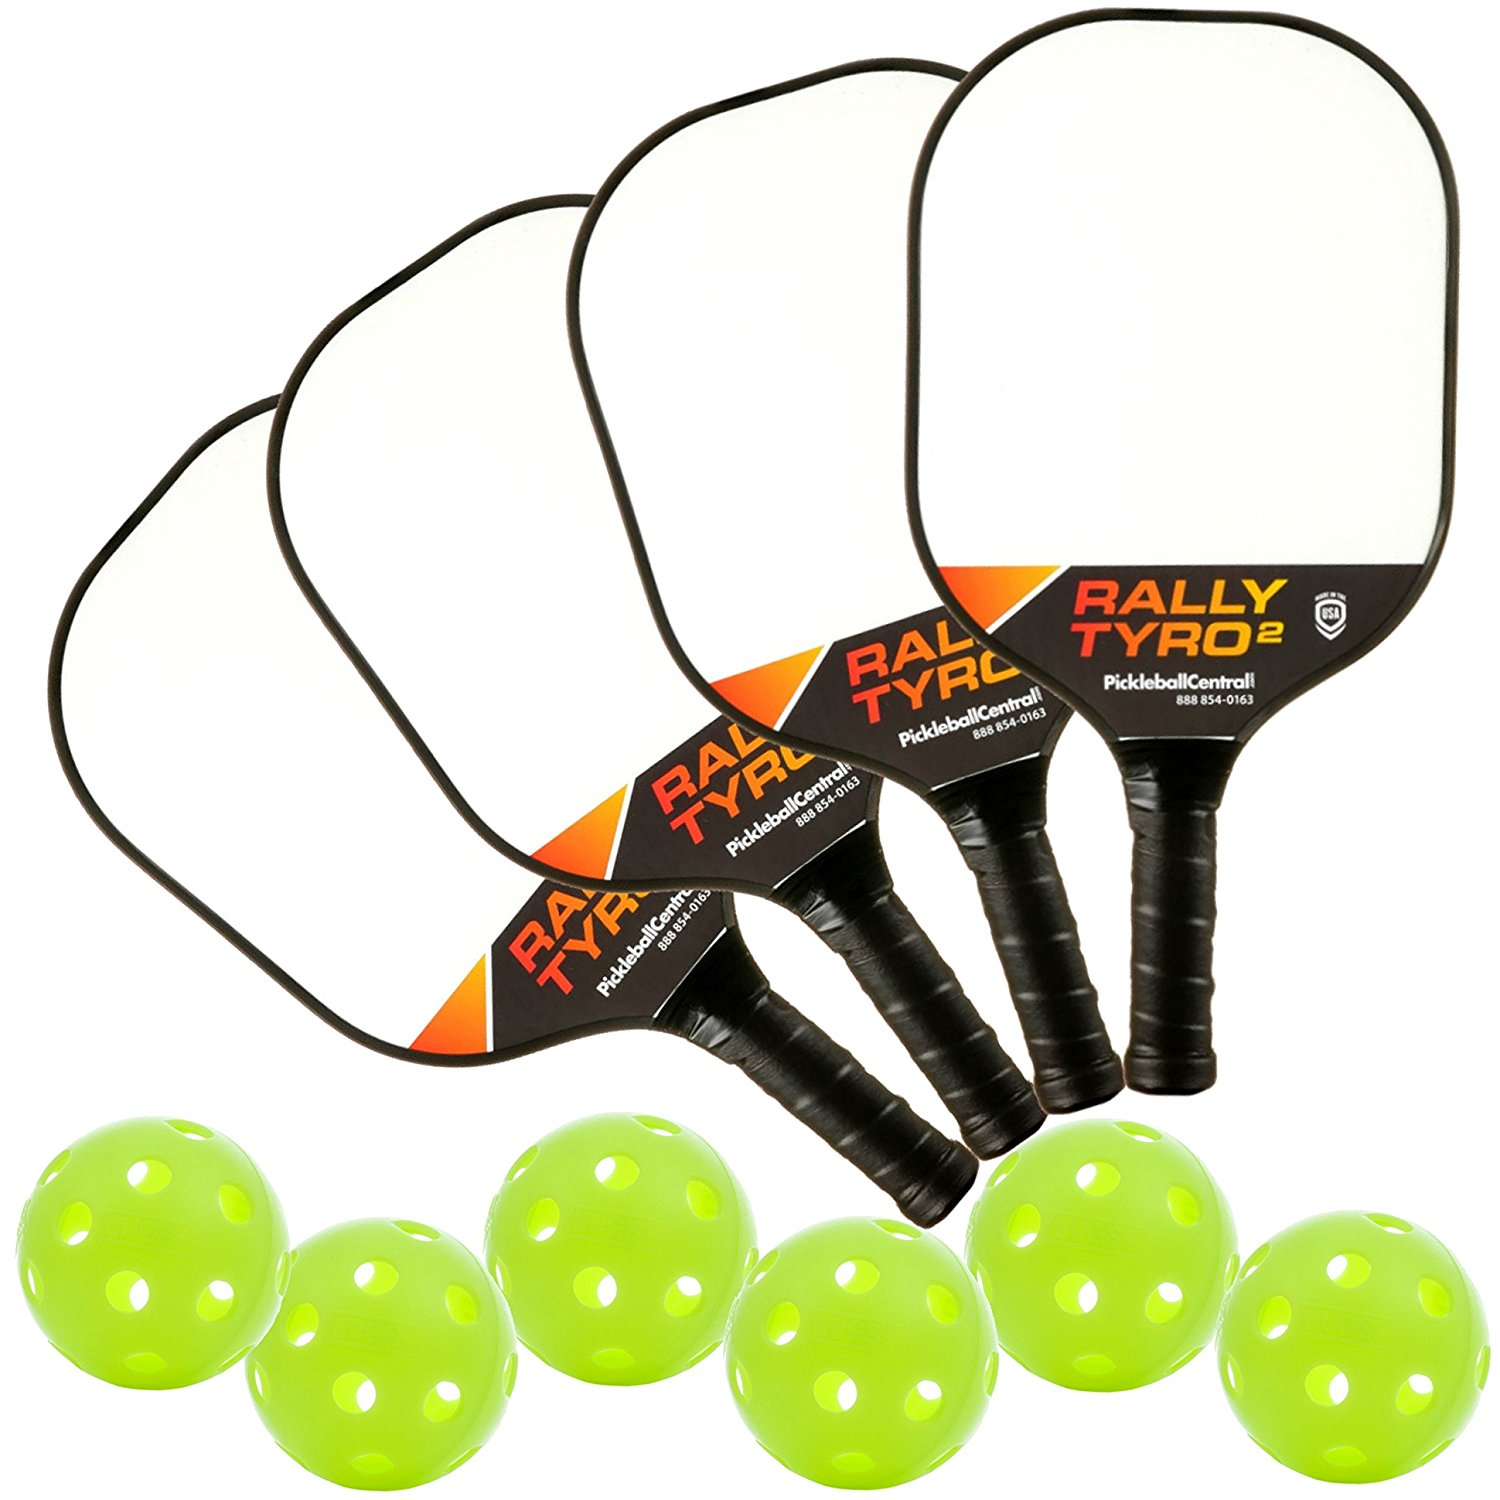 Deluxe Rally Tyro 2 Composite Pickleball Paddle Bundle - 4 paddles/6 balls